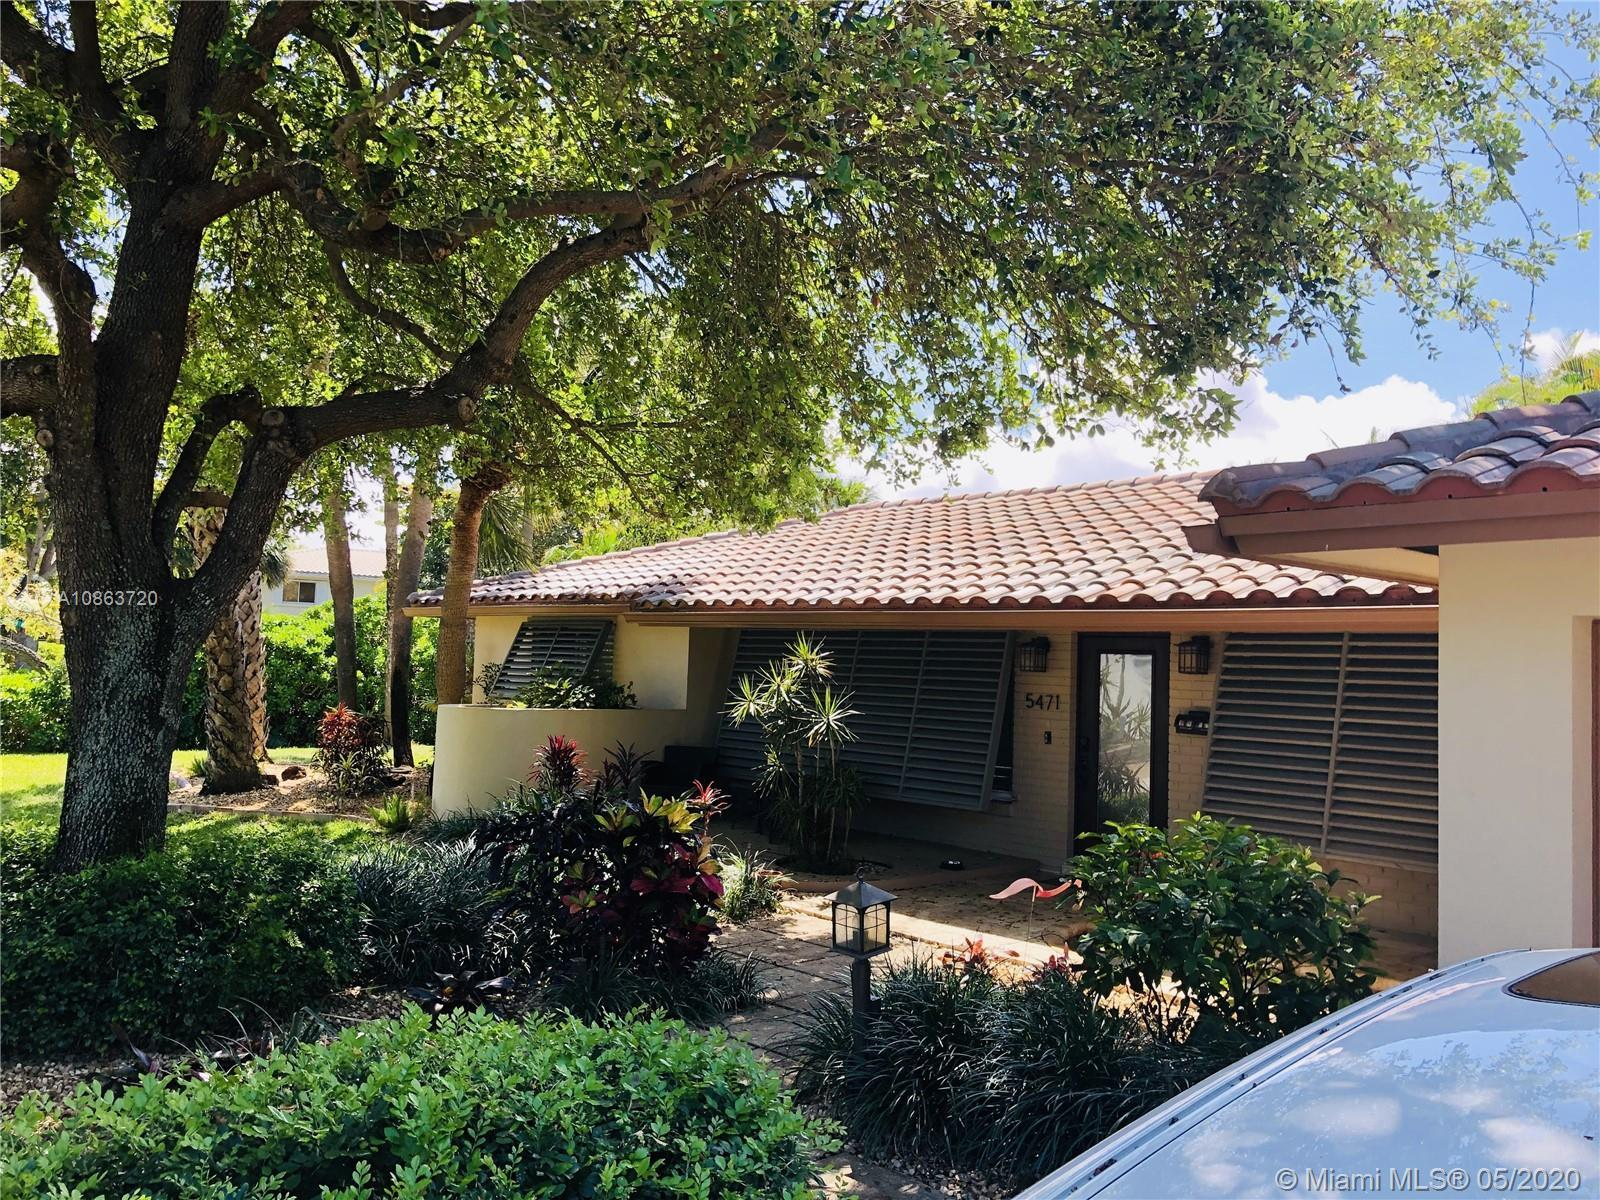 Stunningly Serene Corner lot home in the great location of Knoll Ridge next to Imperial Pointe.This